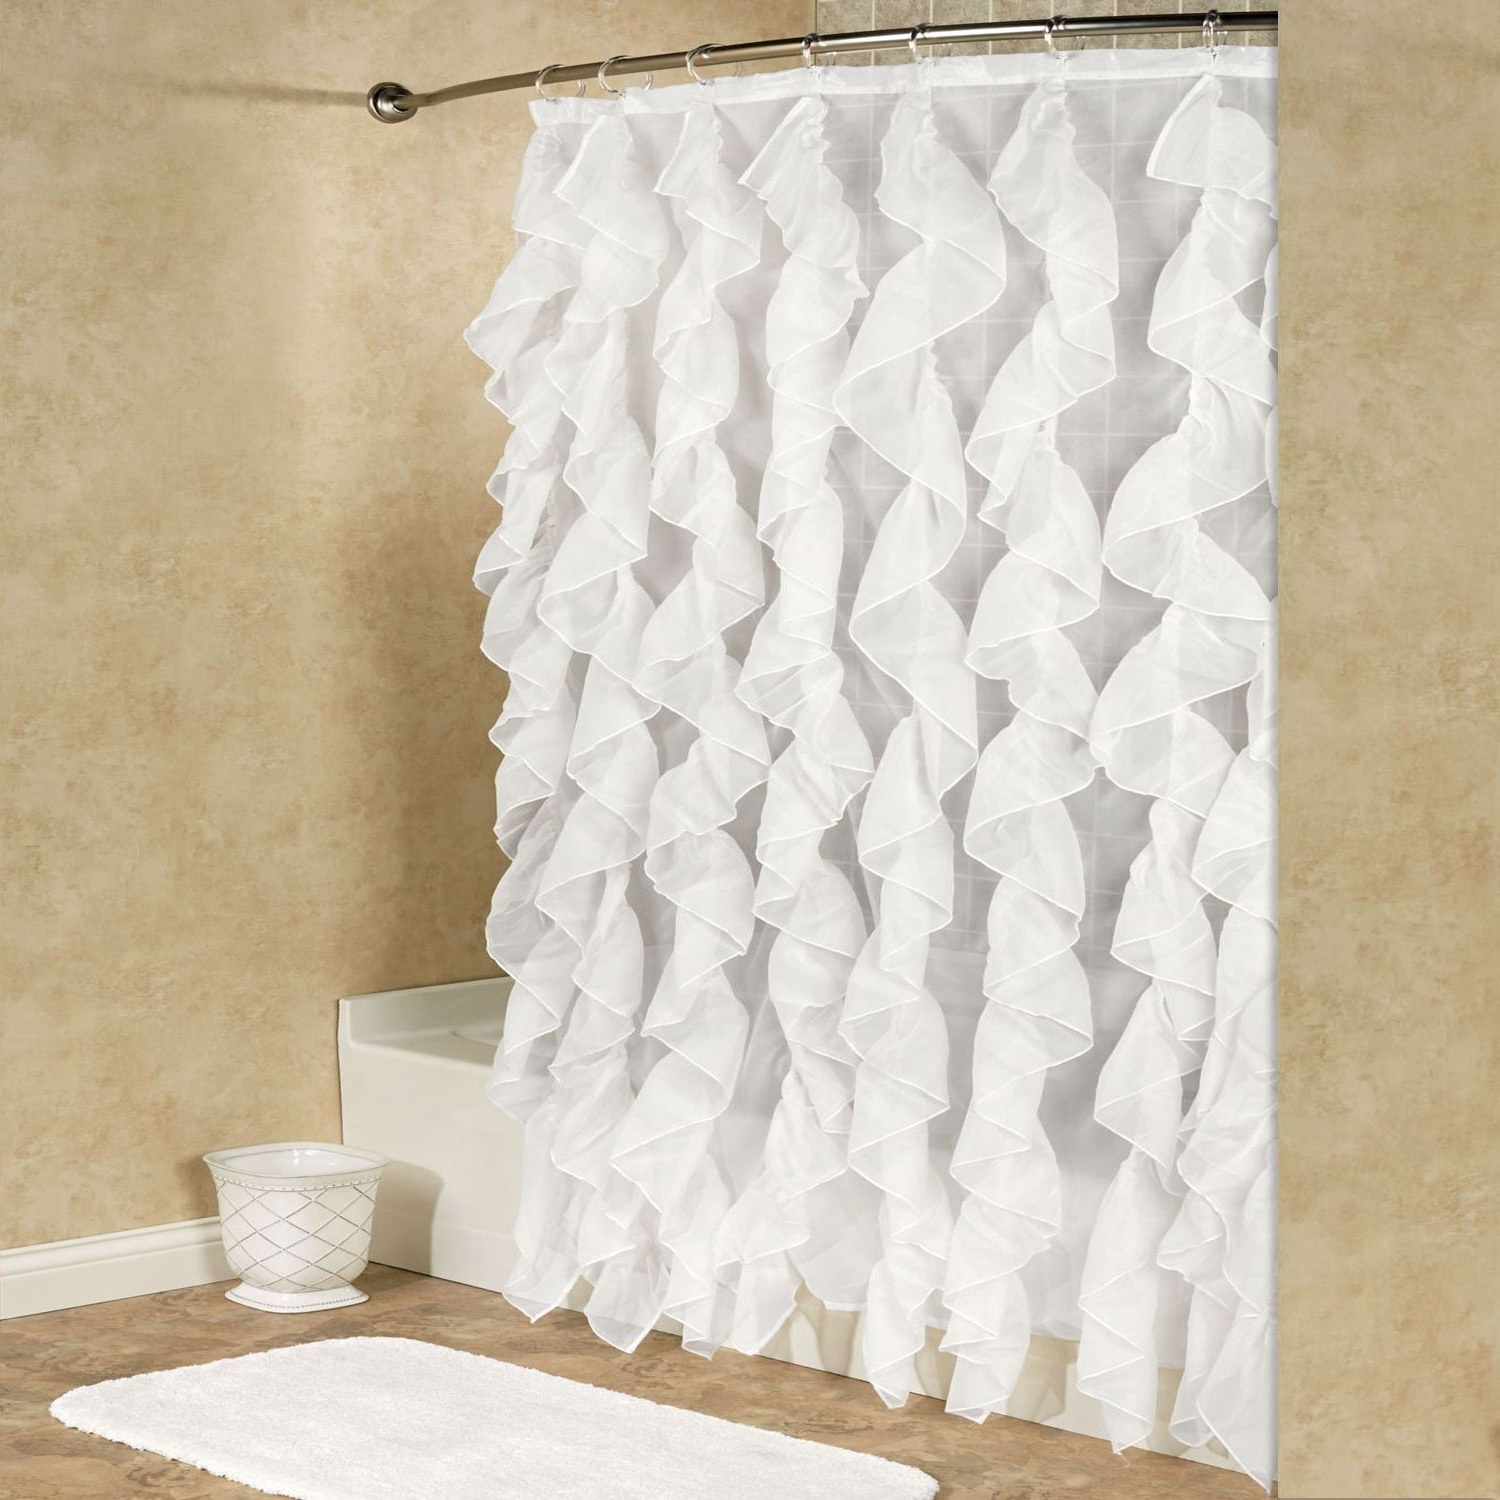 Current Chic Sheer Voile Vertical Waterfall Ruffled Shower Curtain For Silver Vertical Ruffled Waterfall Valance And Curtain Tiers (View 5 of 20)